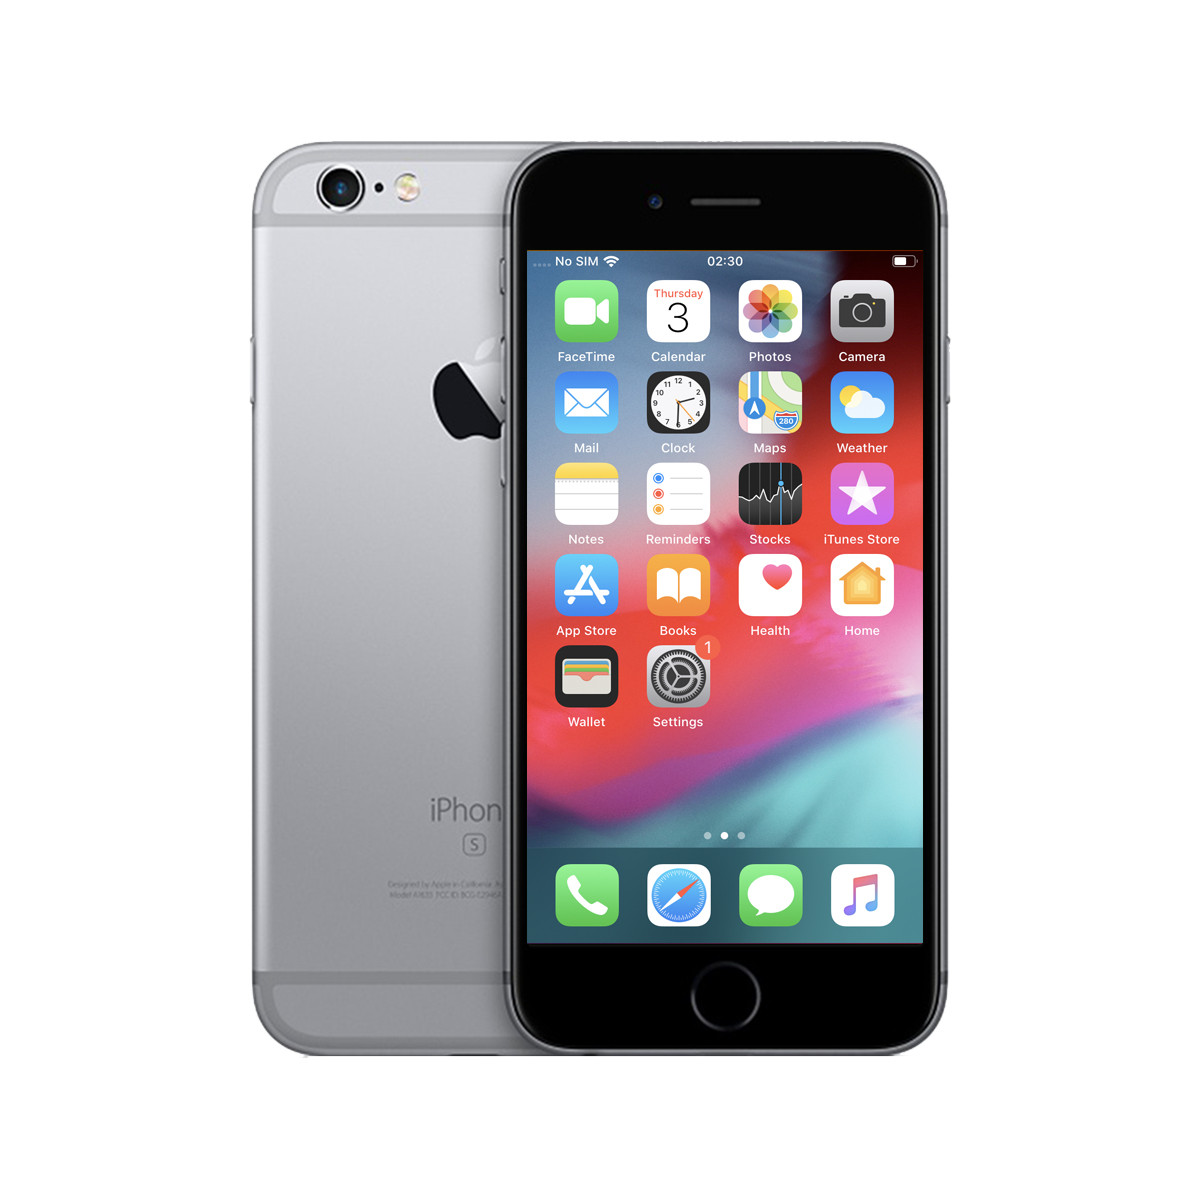 product datasheet renewd apple iphone 6s 11 9 cm 4 7 single sim ios 10 4g 16 gb grey refurbished smartphones rnd p62116